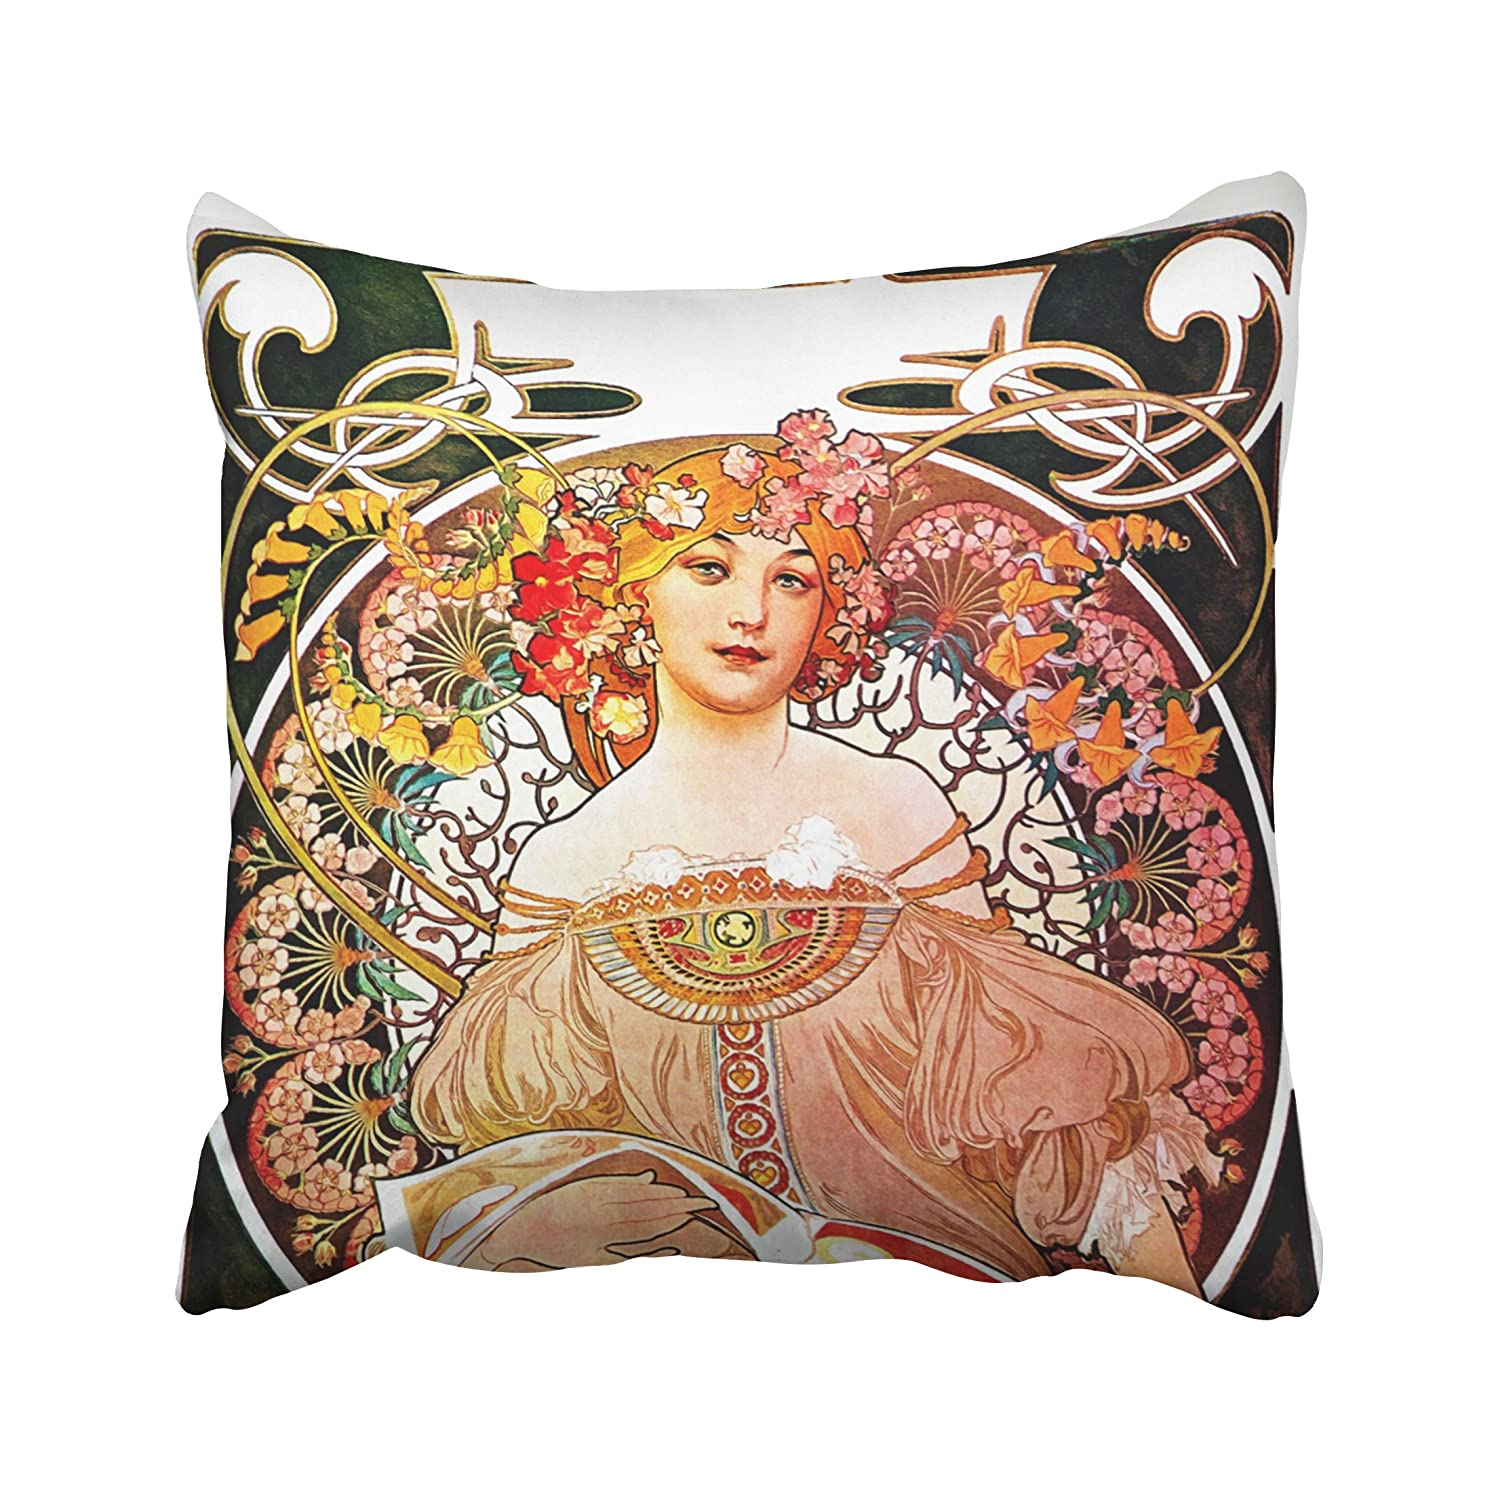 Musesh accent 80s camera decorative Cushions Case Throw Pillow Cover For Sofa Home Decorative Pillowslip Gift Ideas Household Pillowcase Zippered Pillow Covers 16X16Inch